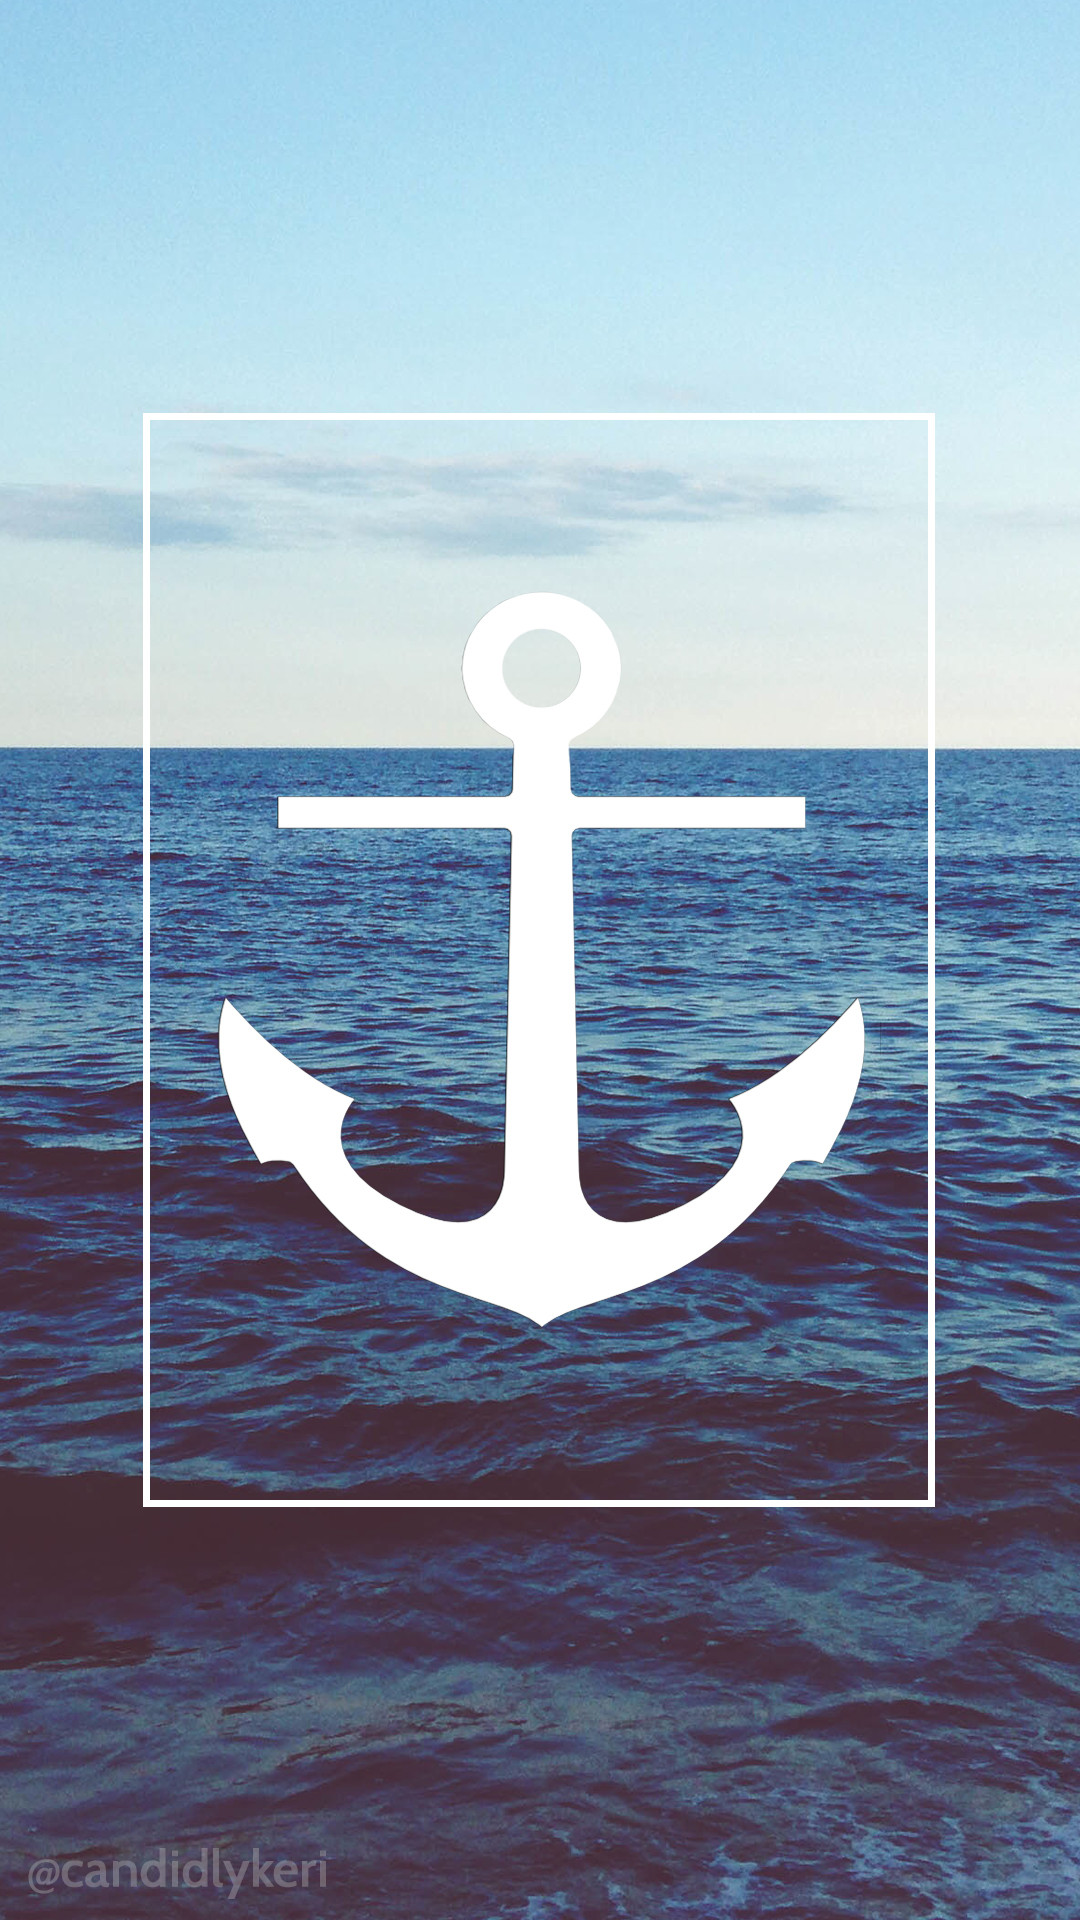 Anchor Wallpaper for iPhone 57 images 1080x1920